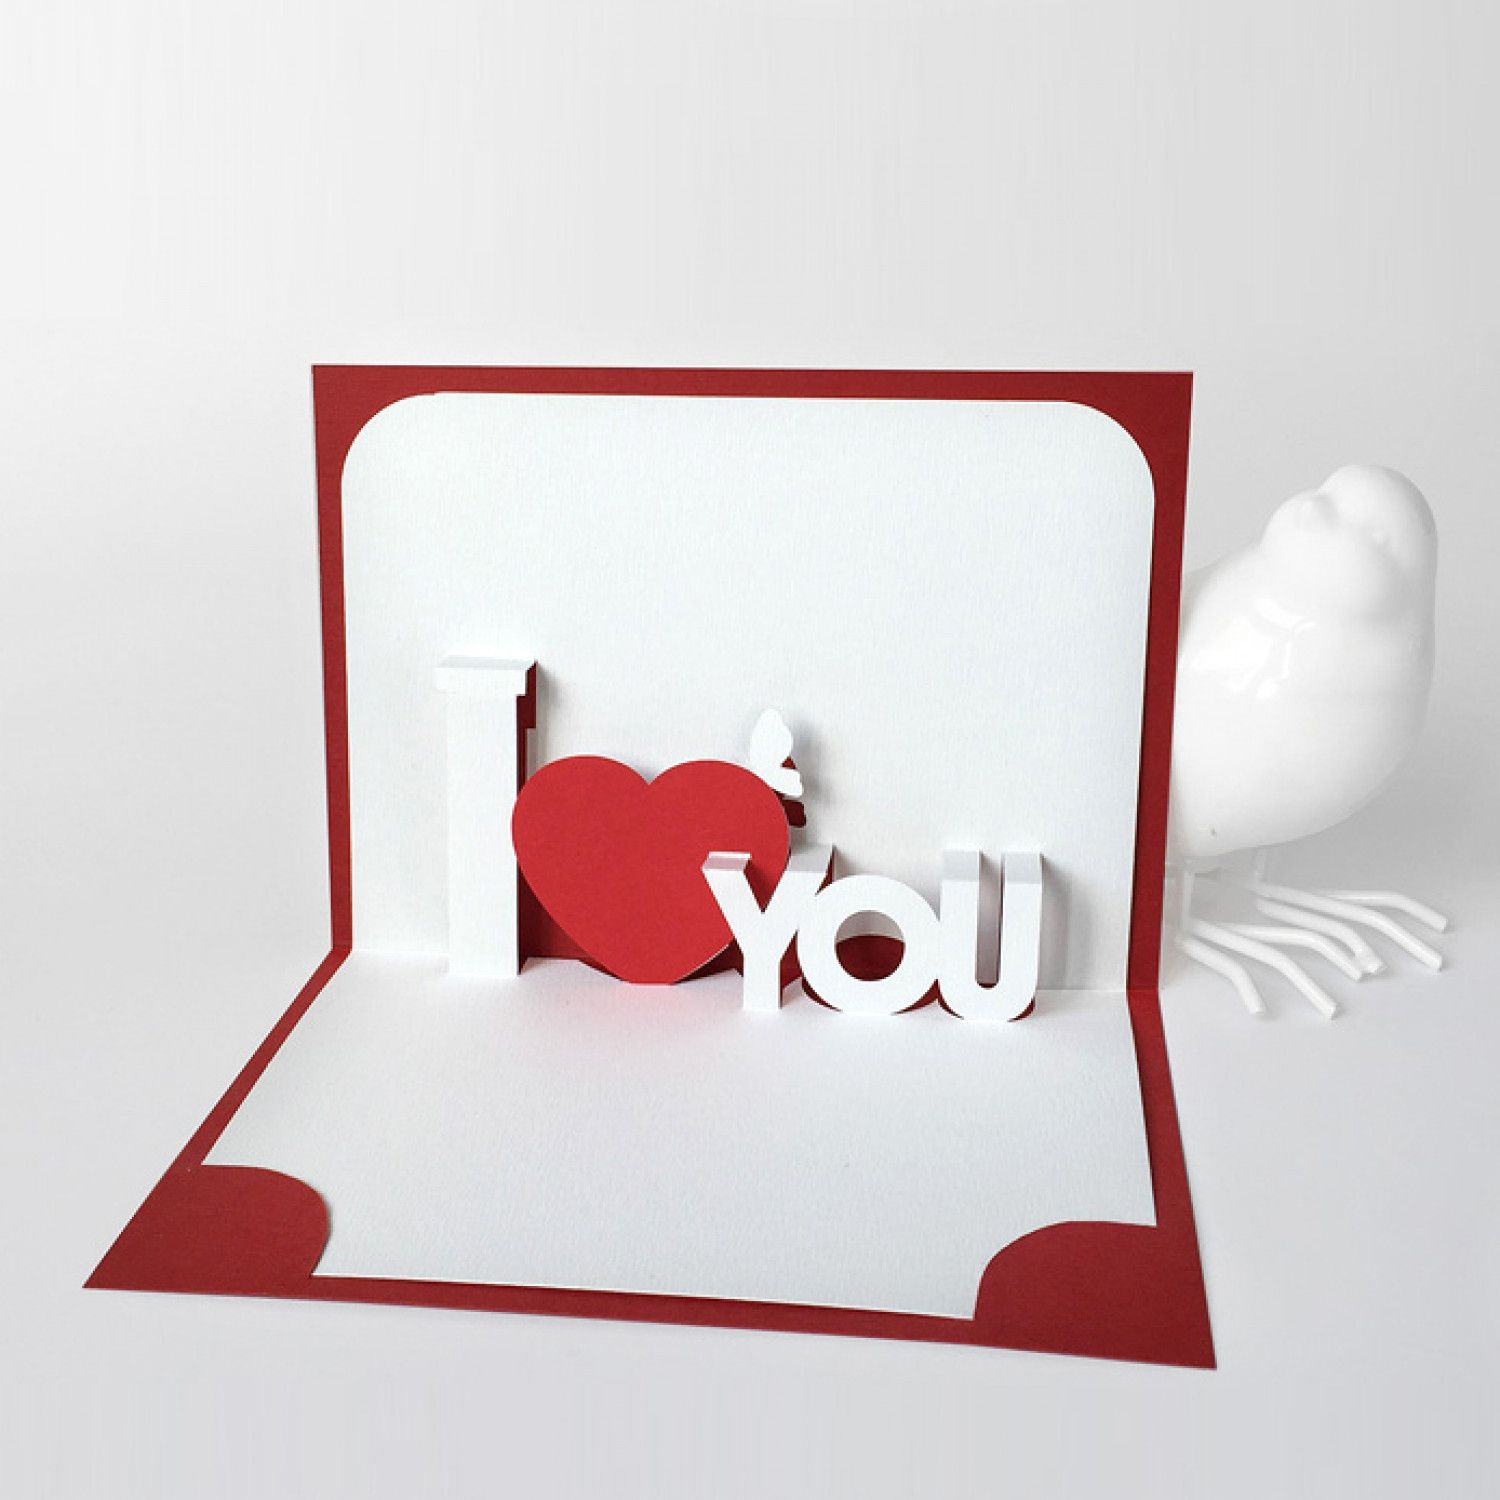 Template Pop Up Card I Love You With I Love You Pop Up Card Template Cumed Org Pop Up Card Templates Heart Pop Up Card Pop Up Cards